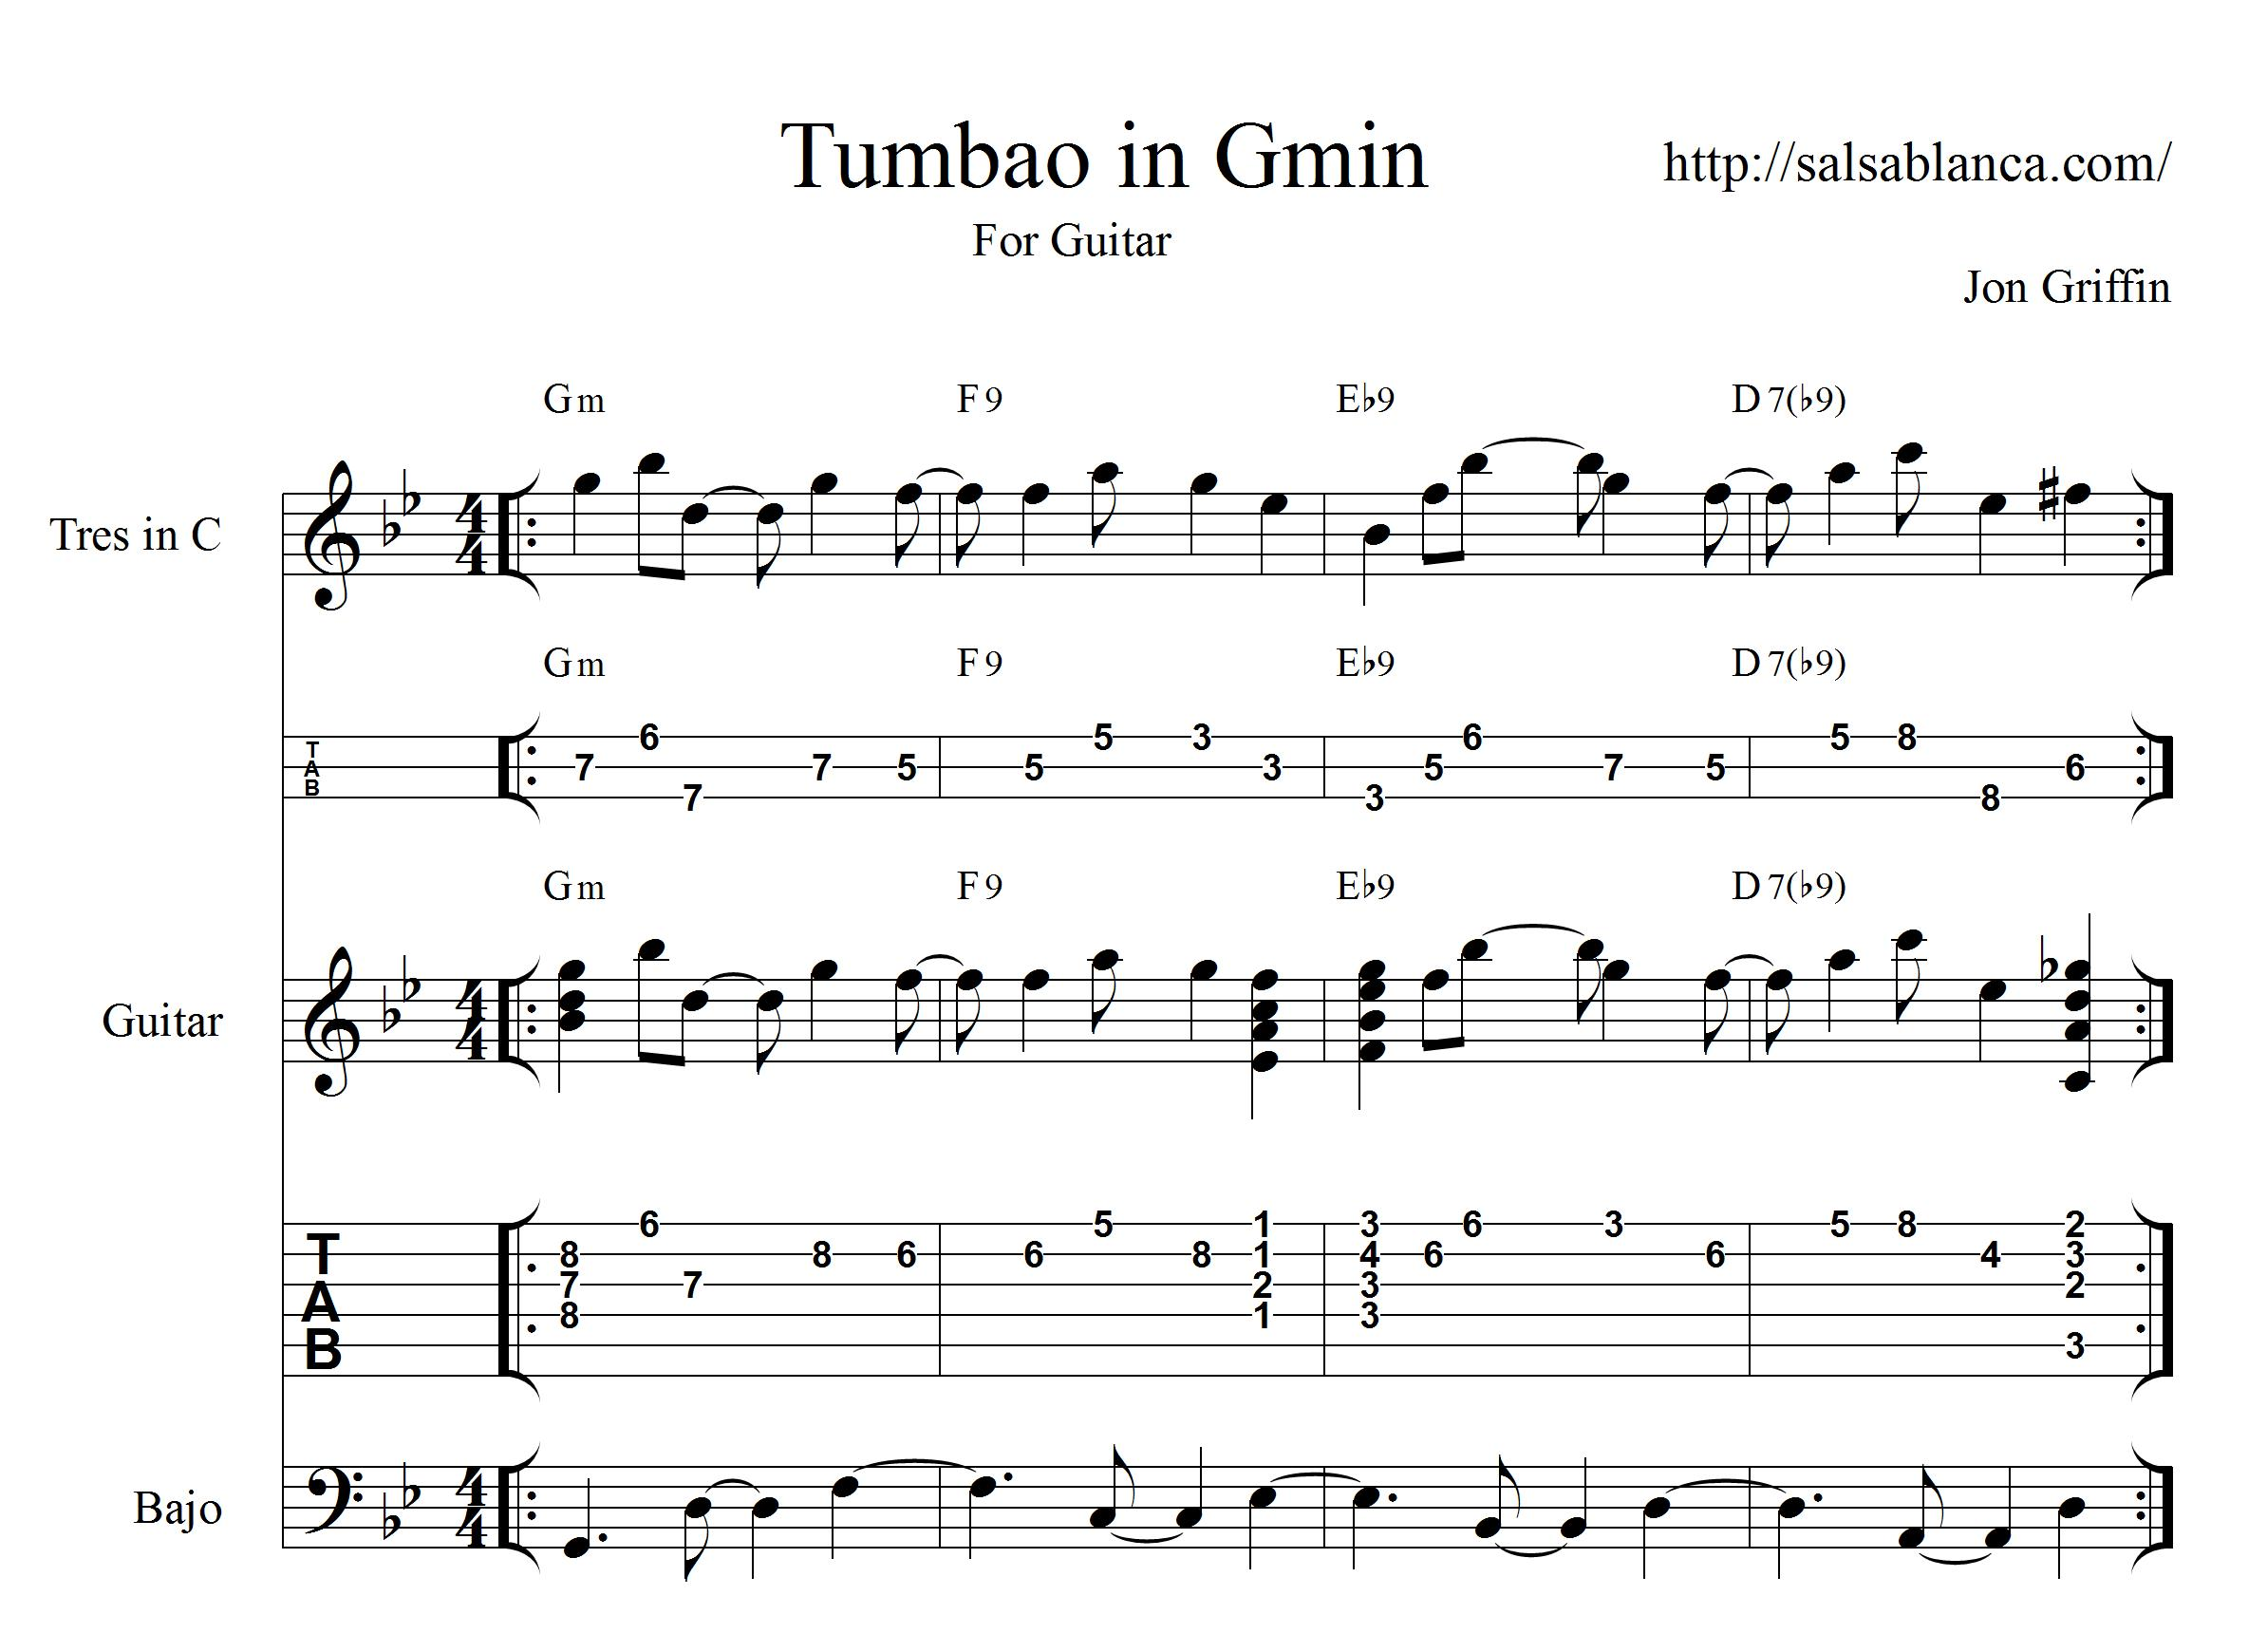 Tumbao in G minor for Cuban tres and guitar